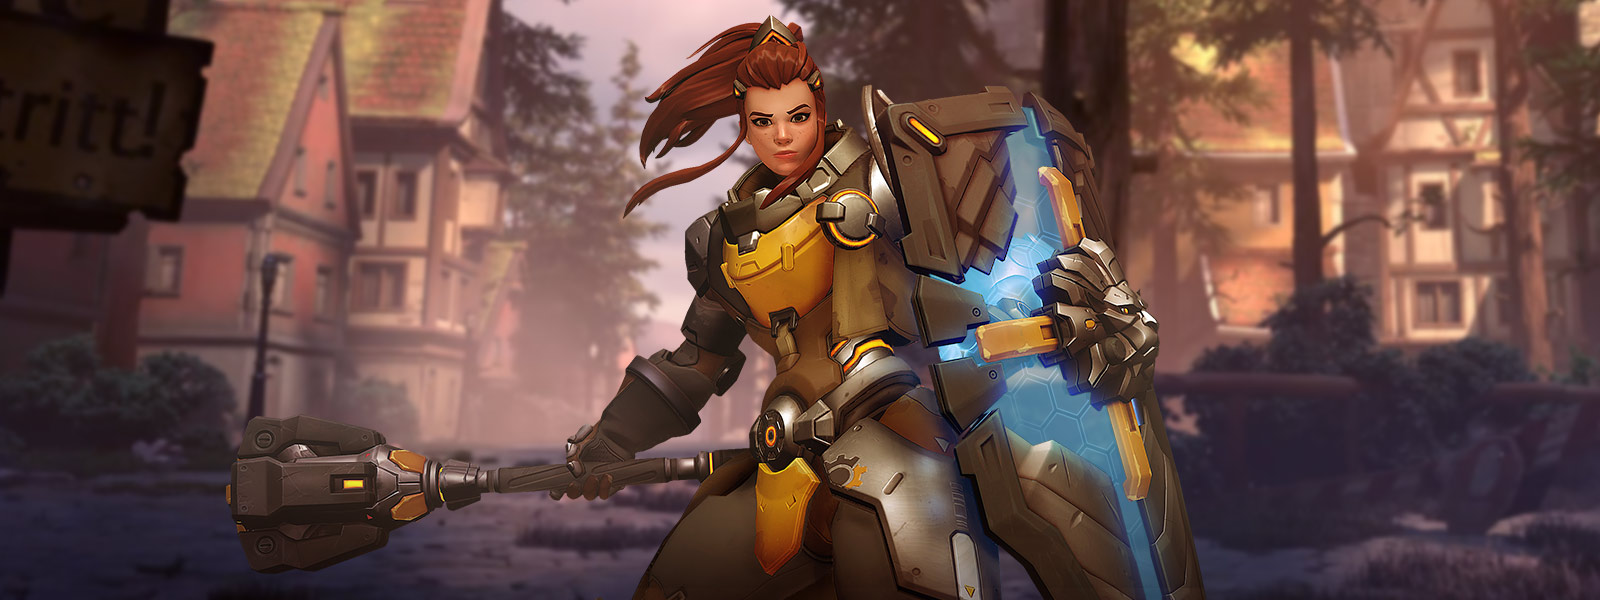 Front view of female character Brigitte holding a flail and shield